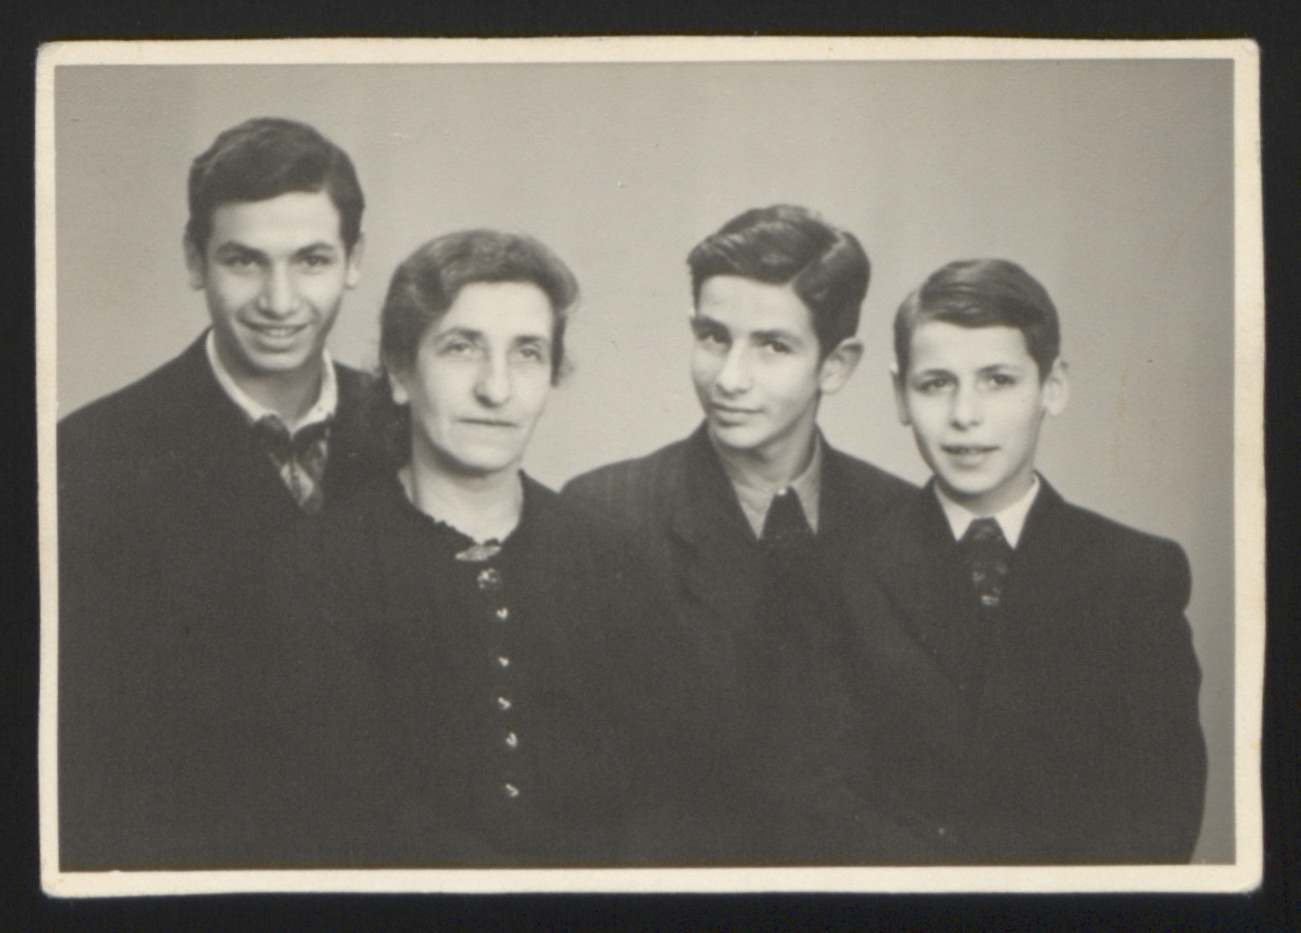 Family portrait of Karl Heinz, Rachel, Wolfgang, and Eliot Rosner after their liberation and reunion.